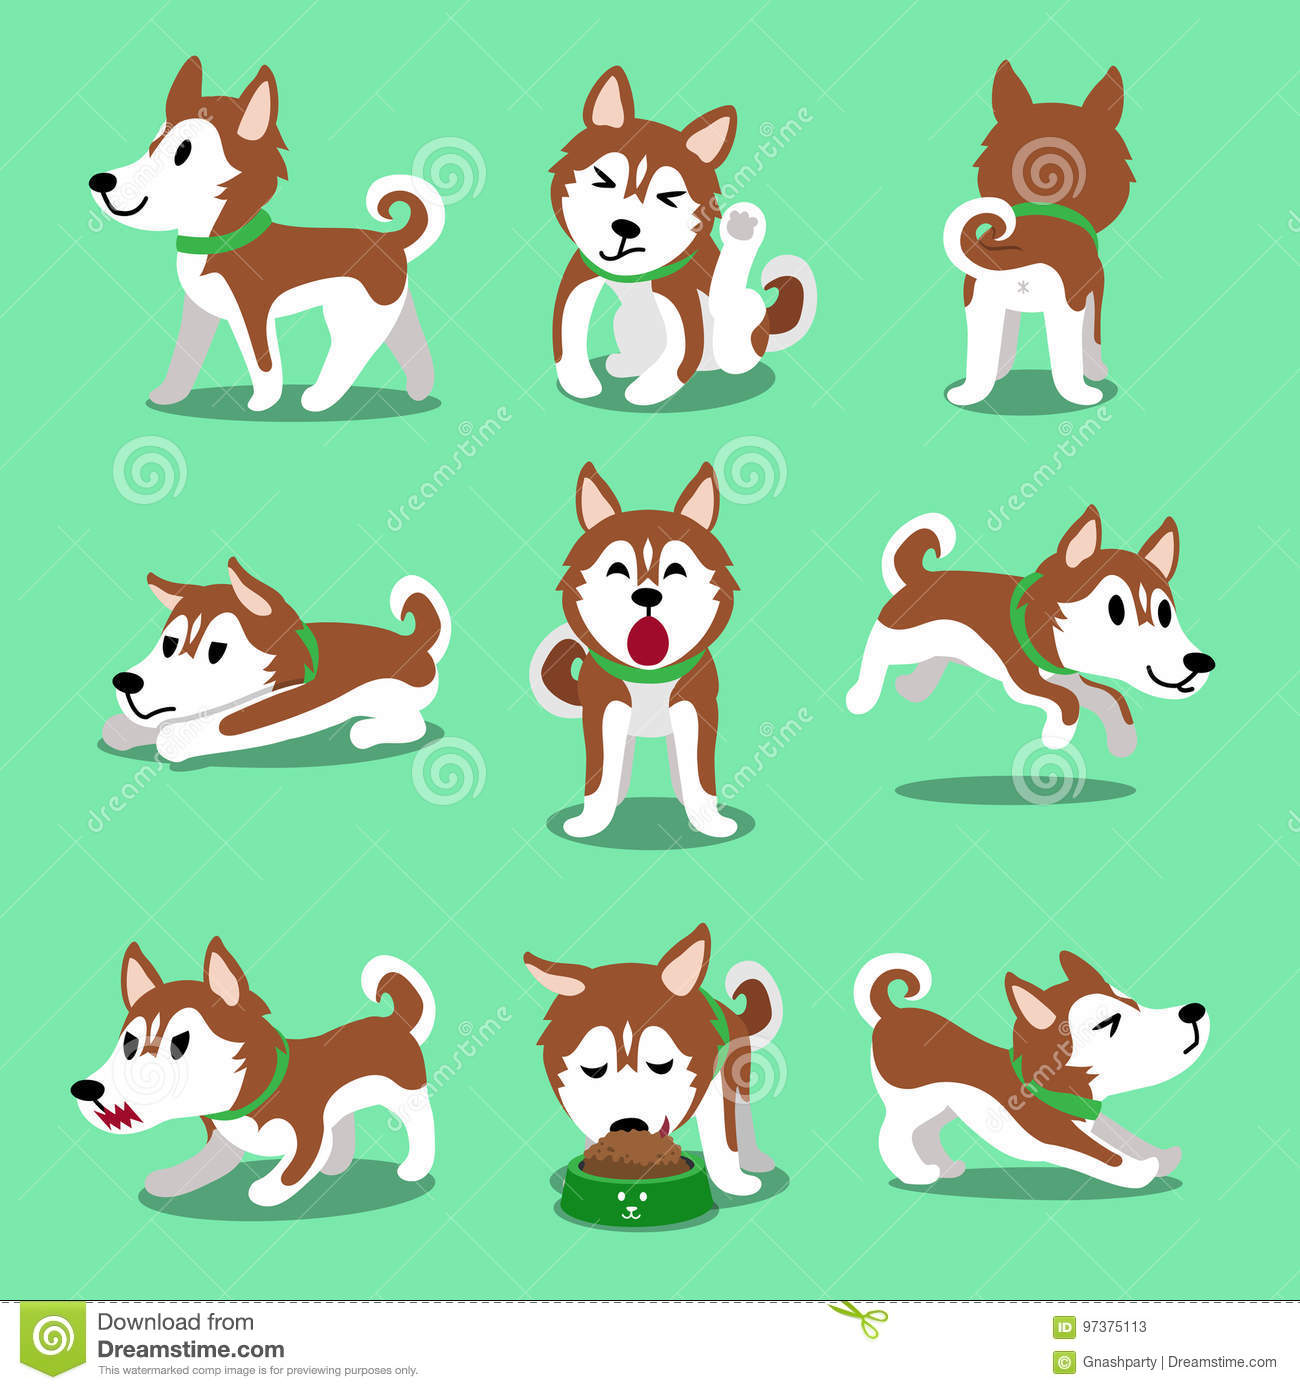 Cartoon Character Brown Siberian Husky Dog Poses Stock Vector Illustration Of Funny Sign 97375113